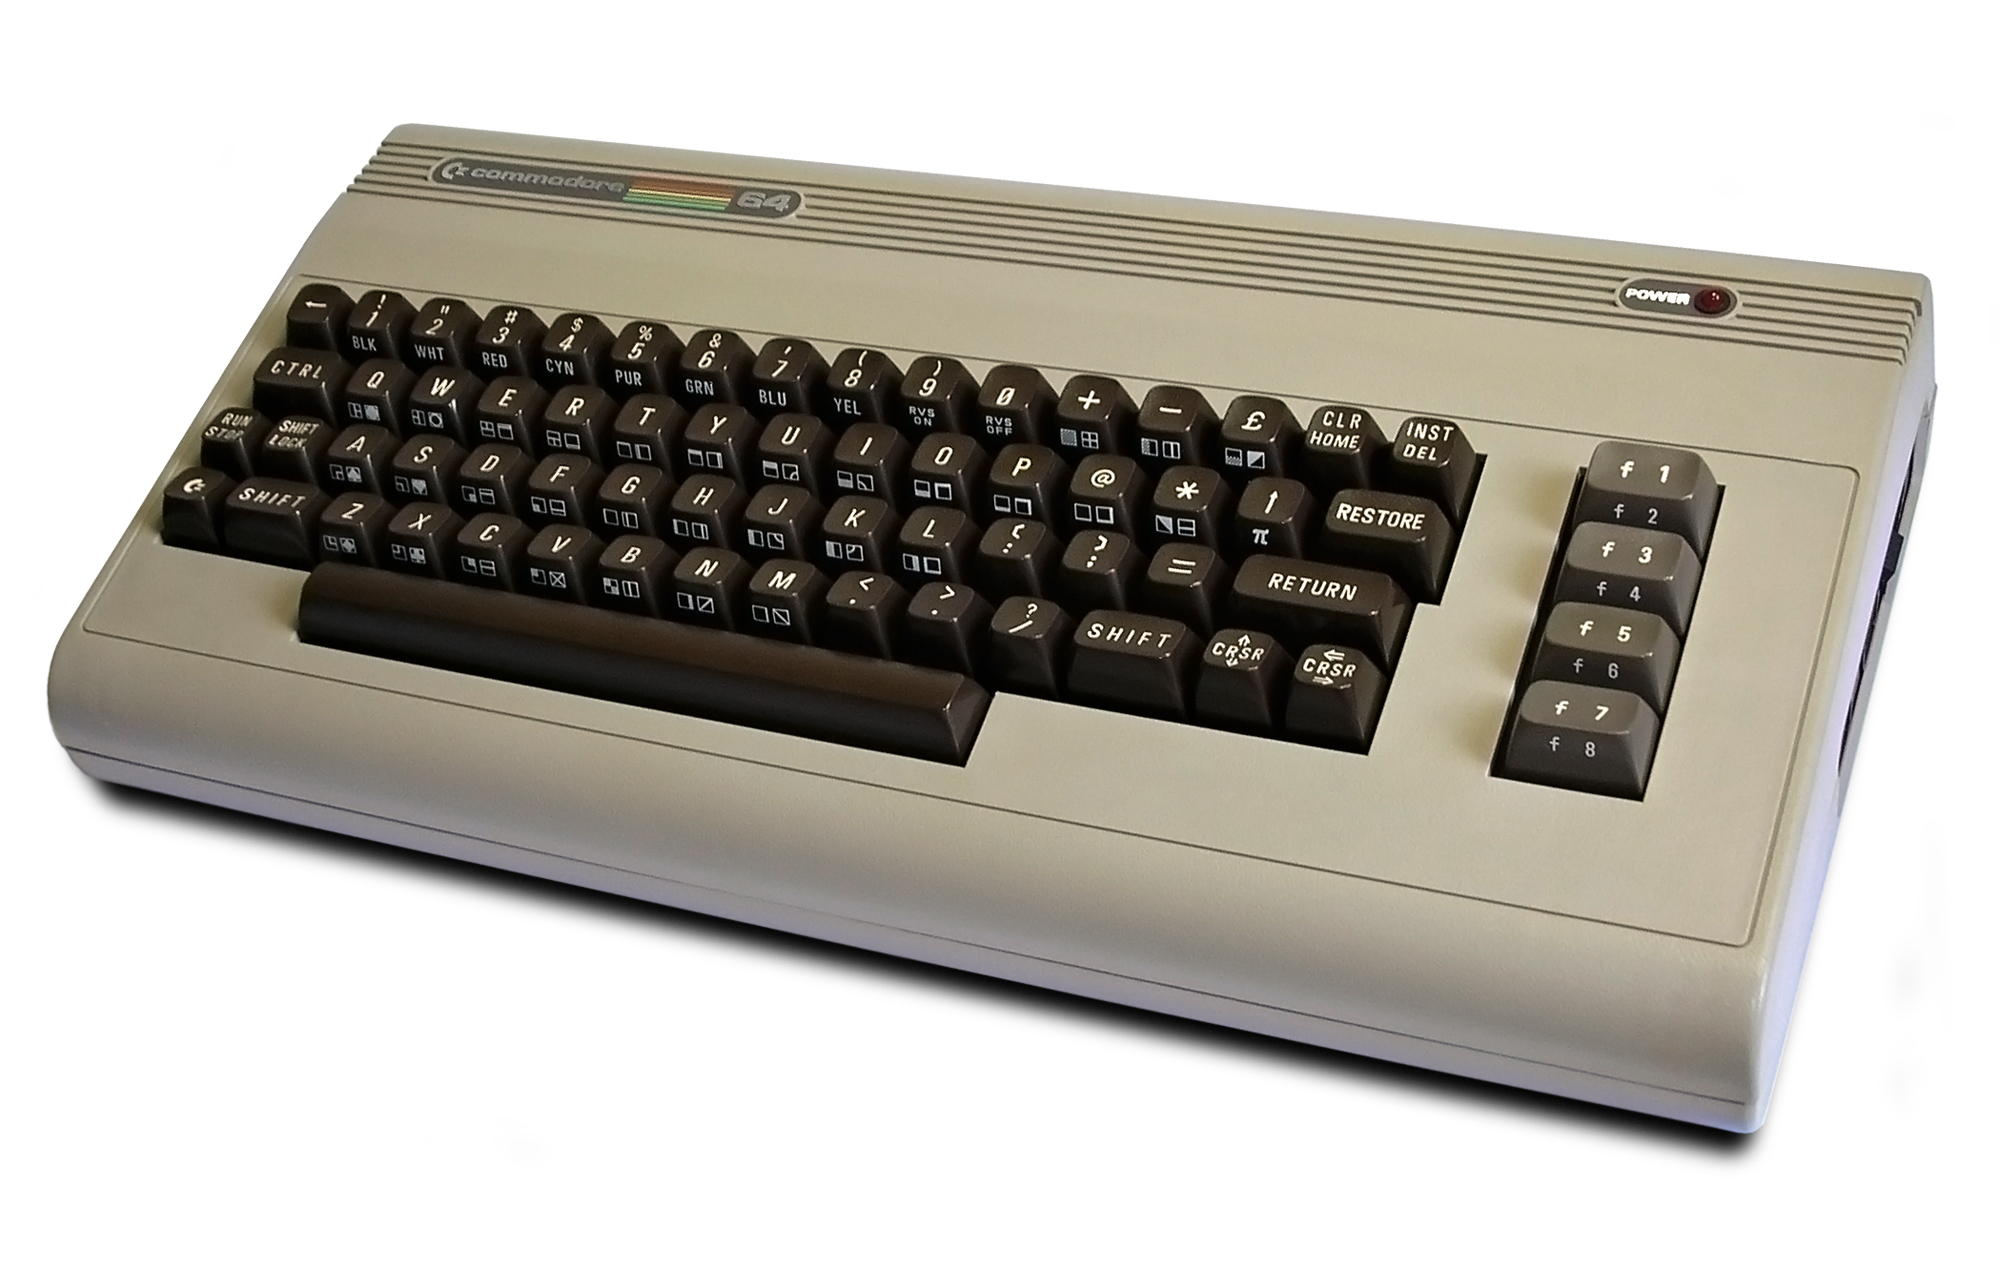 TUTORIAL: Utilizzare il PC come Hard Disk del Commodore 64!